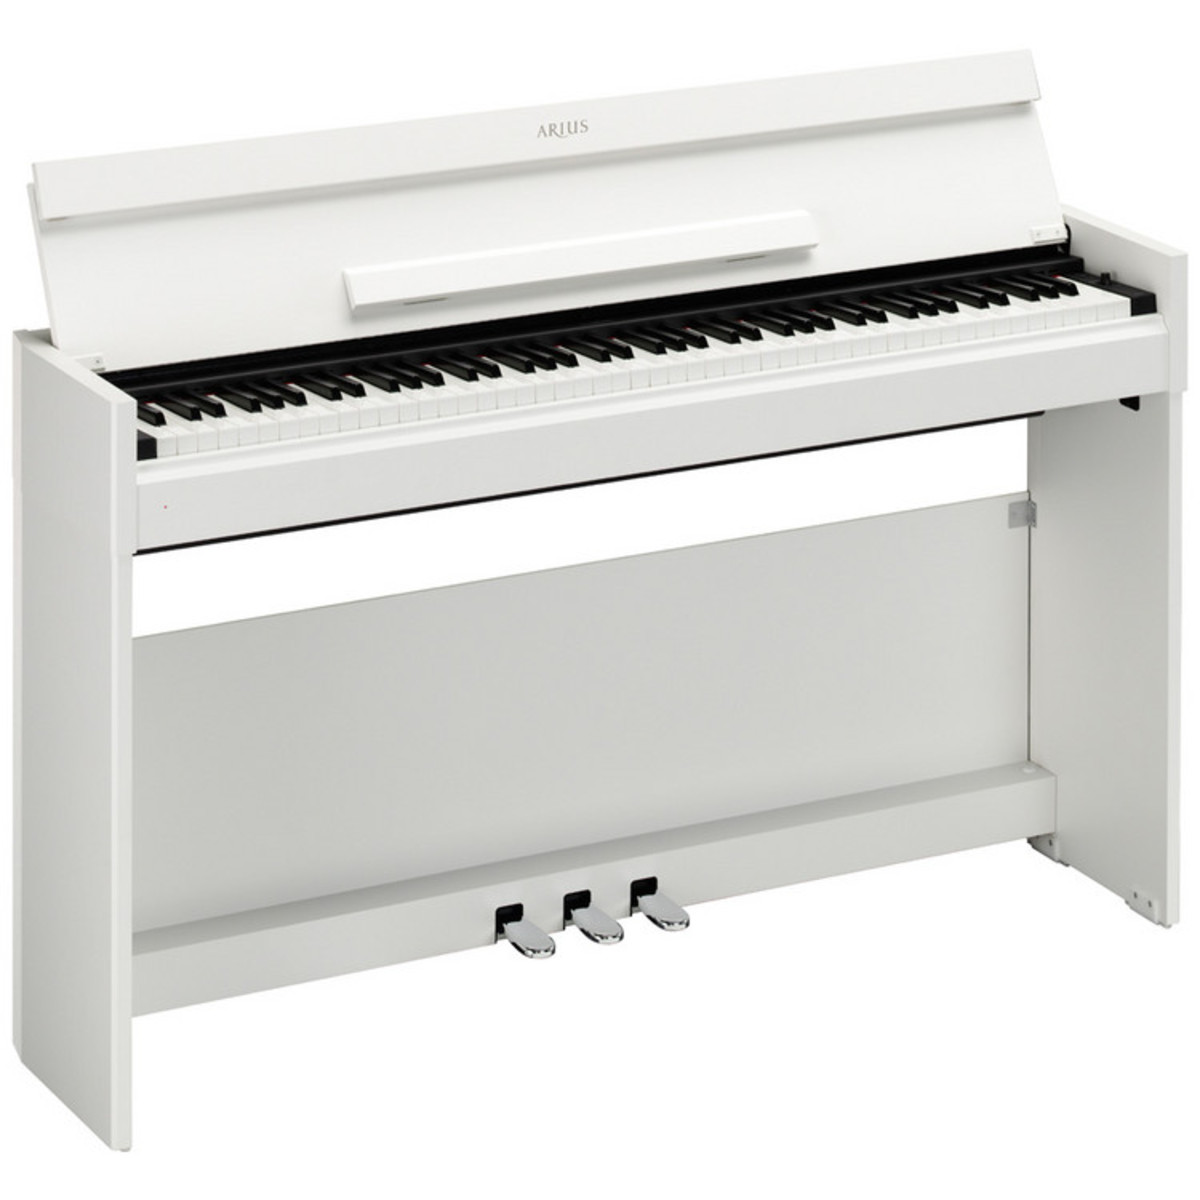 Disc yamaha arius ydps51 digital piano white at for White yamaha piano